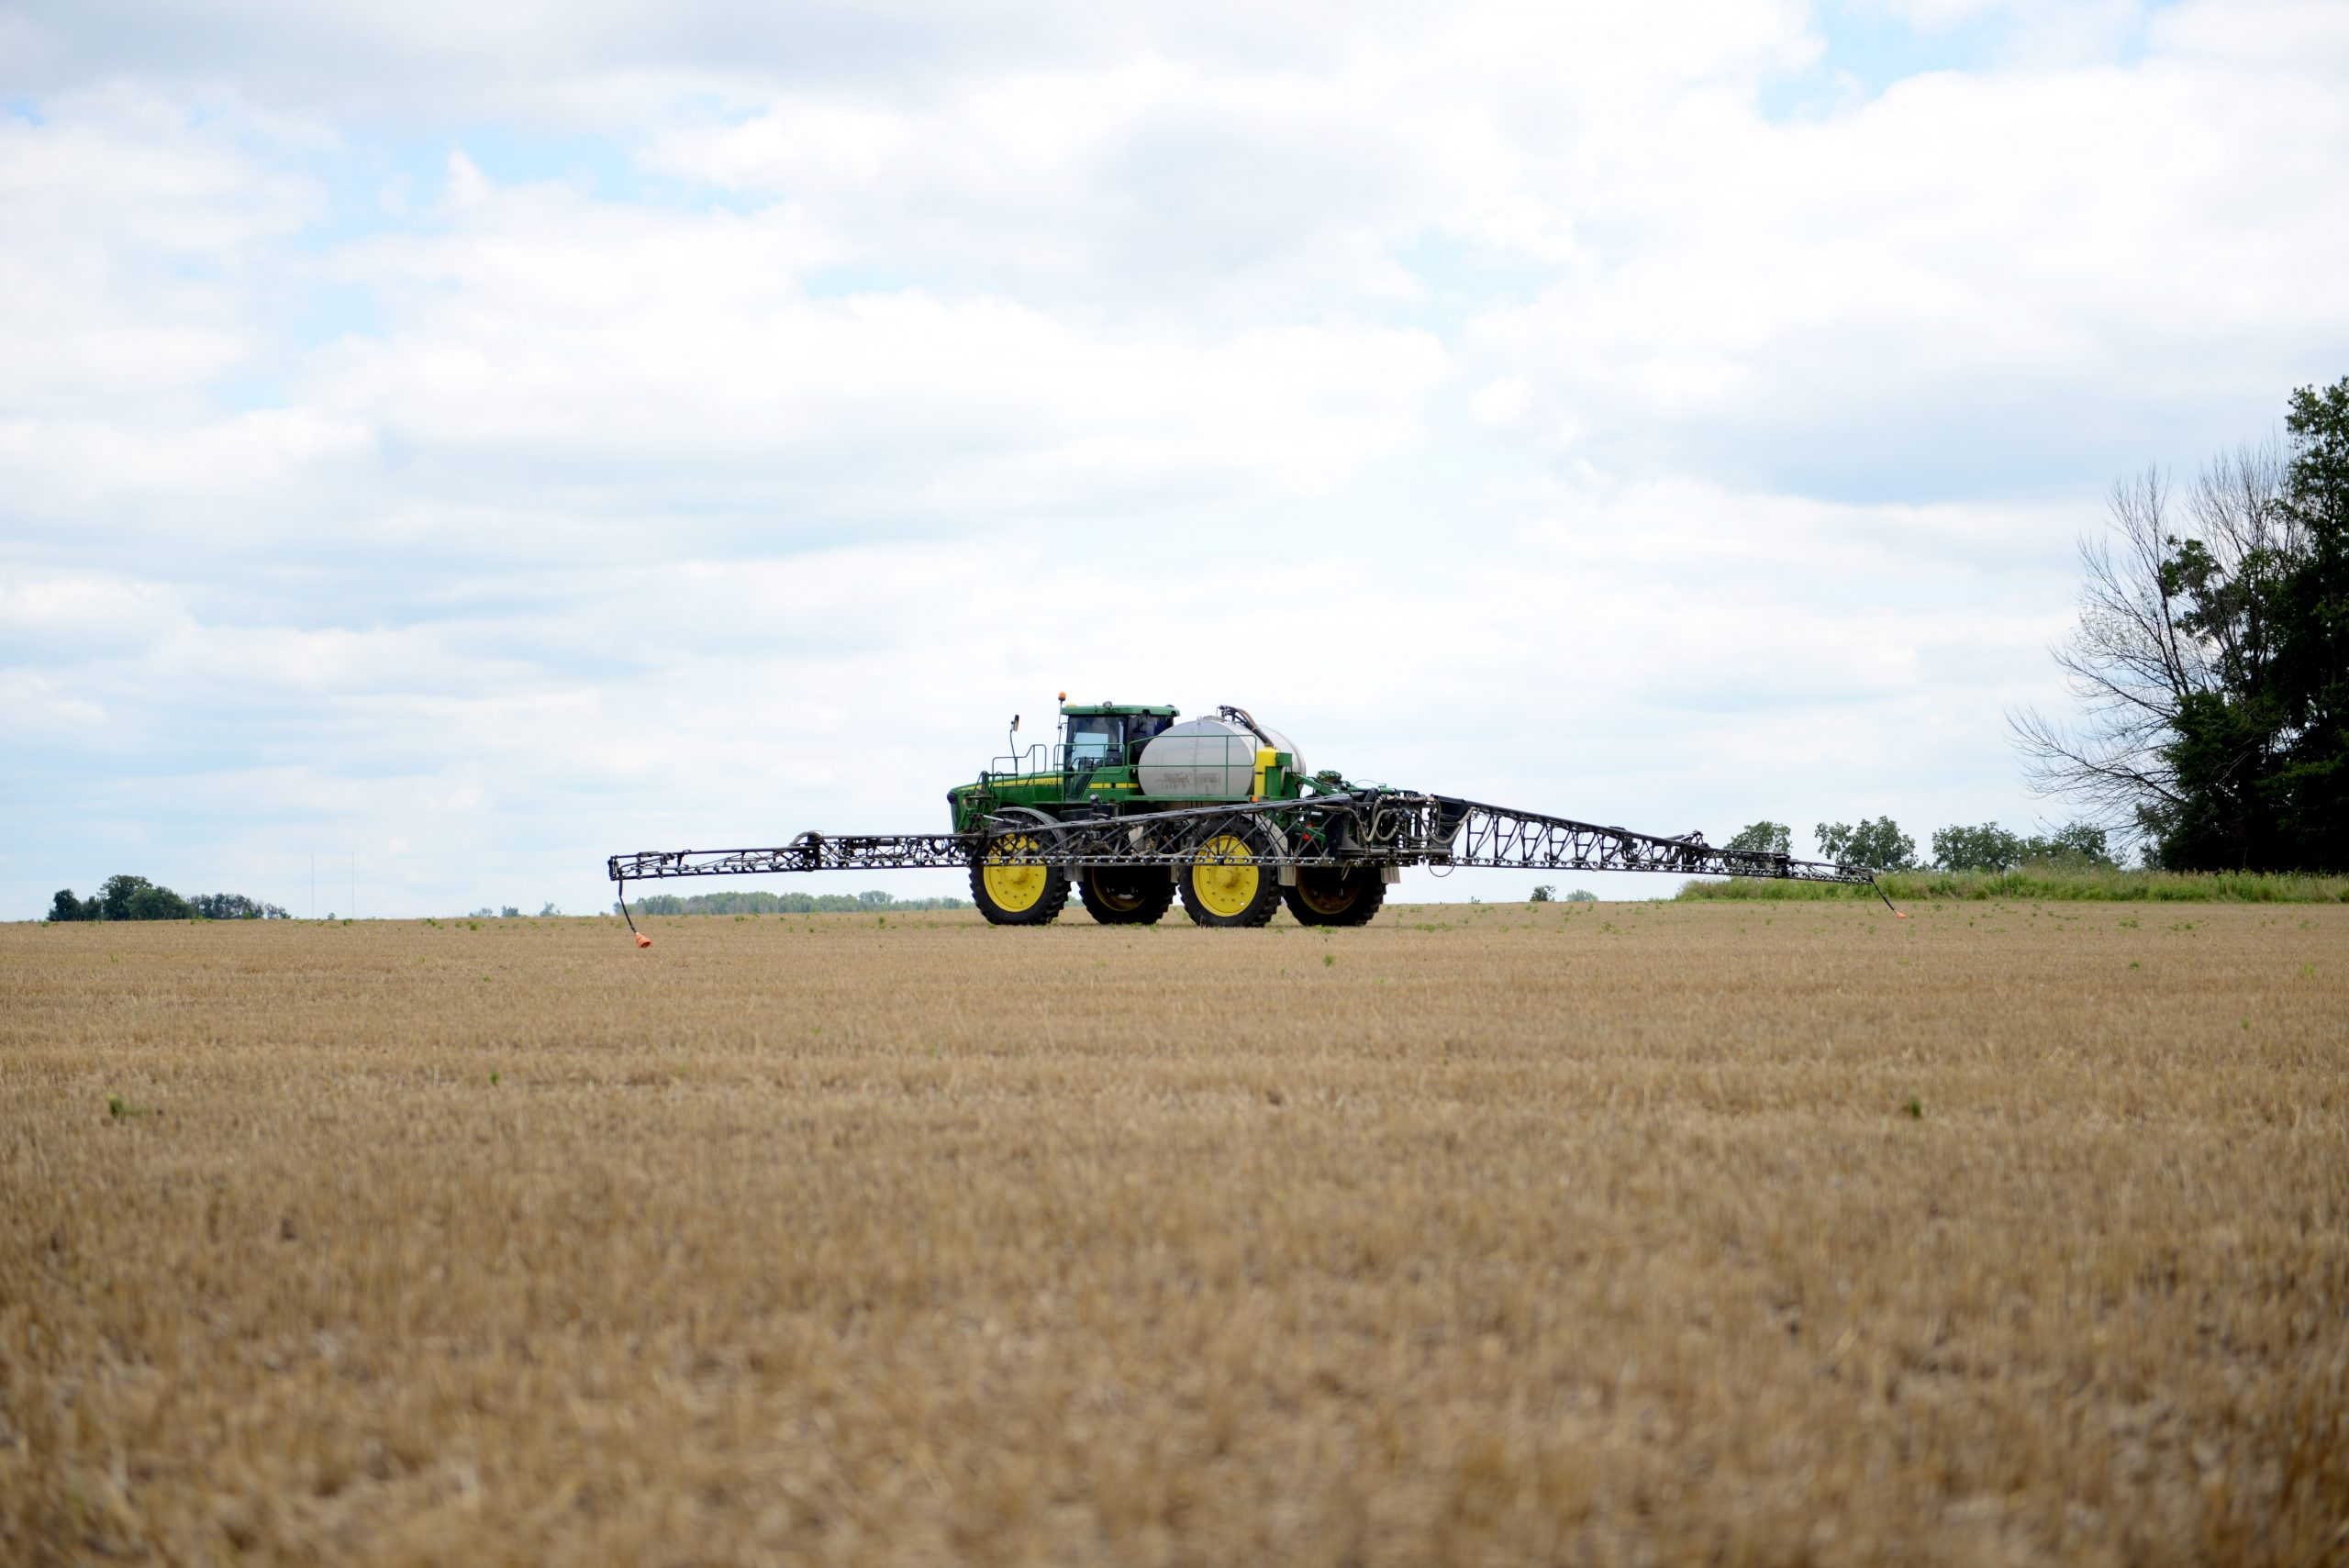 Agronomy Division Manager, Dan Recker, Featured on In Ohio Country Today